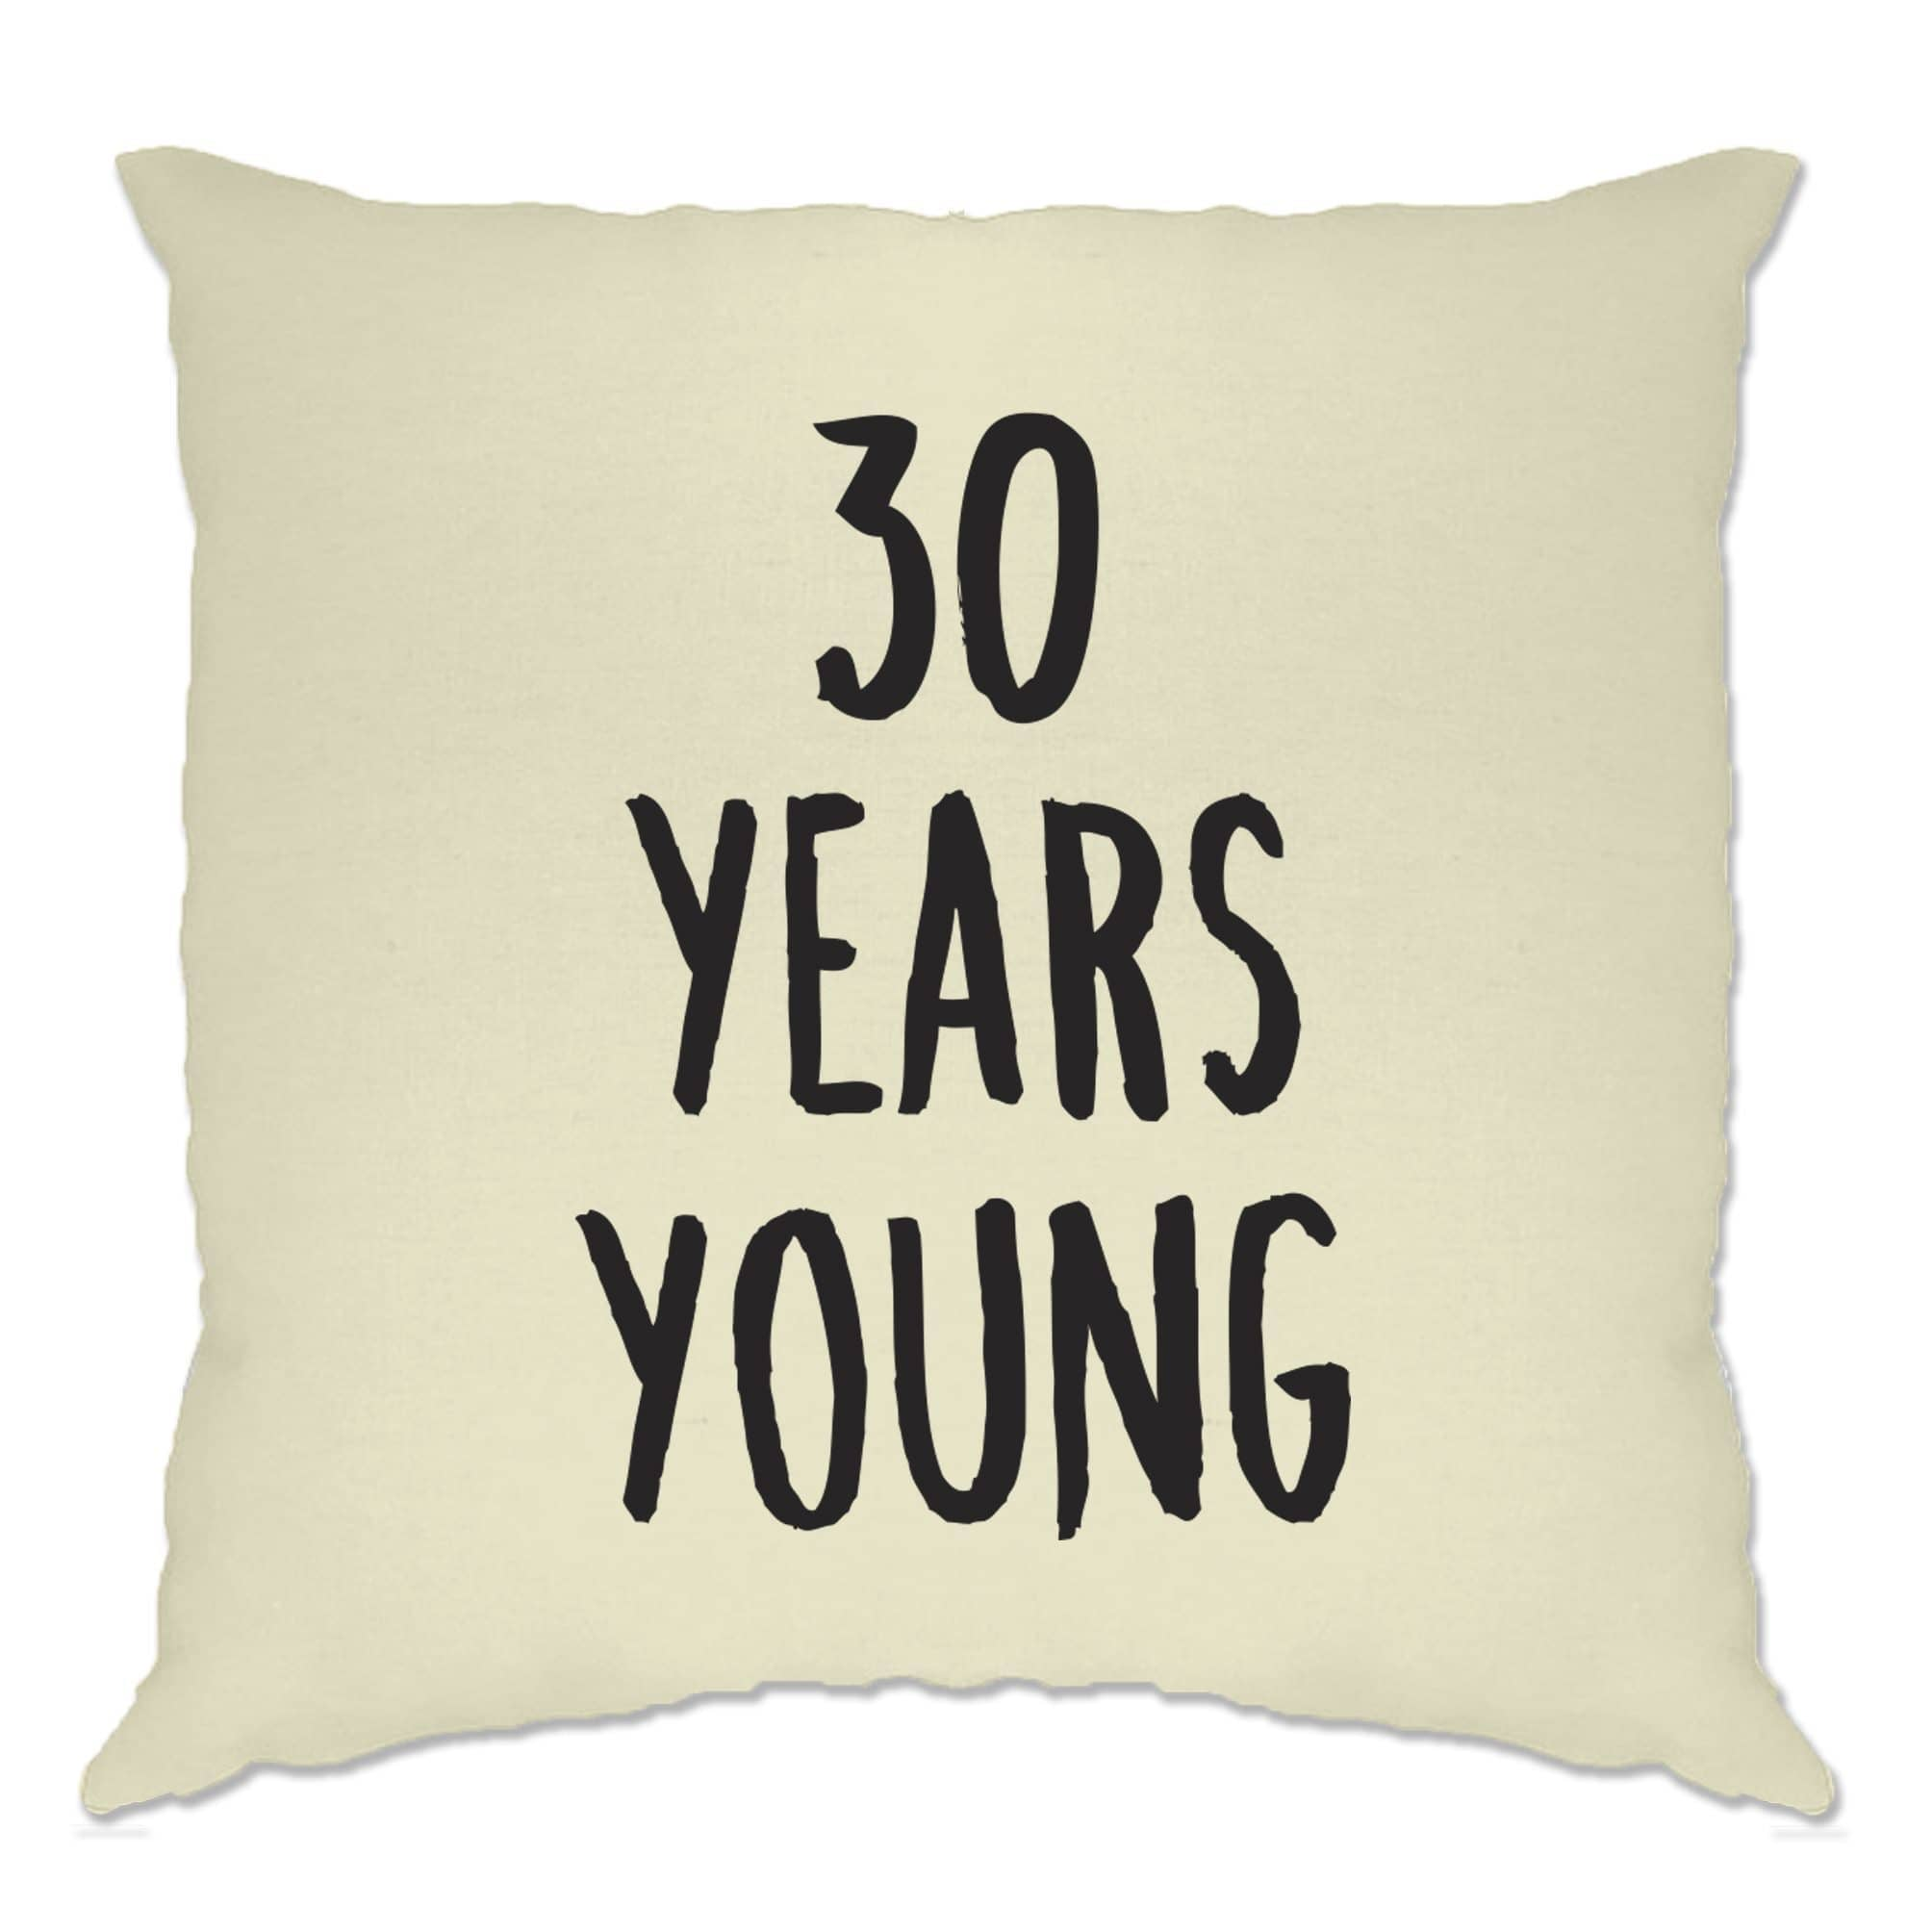 30th Birthday Joke Cushion Cover 30 Years Young Novelty Text